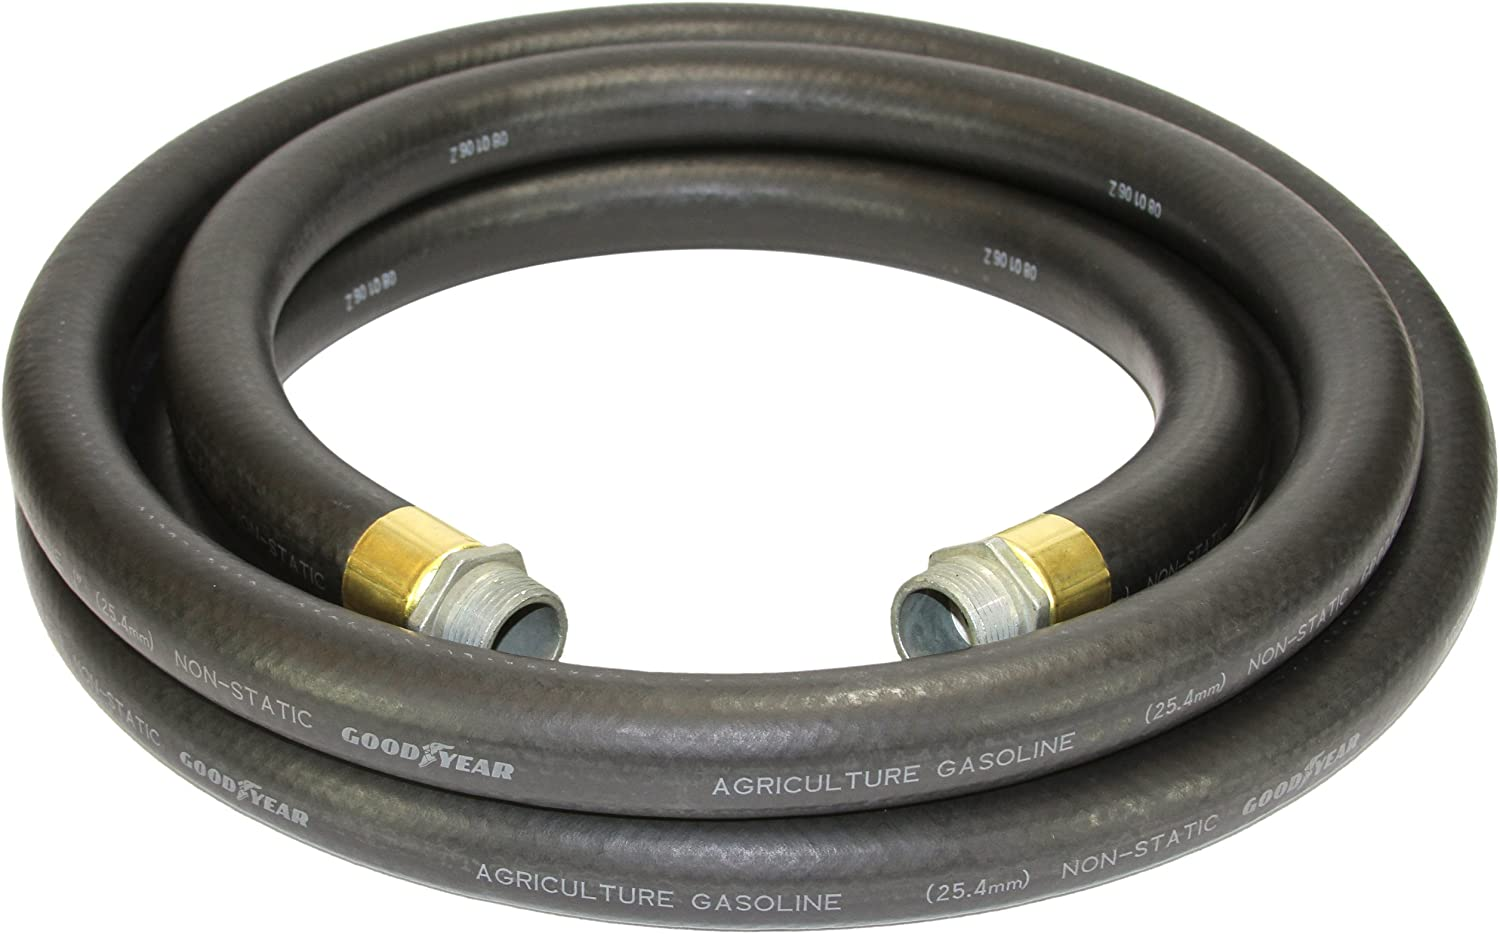 Goodyear 1729-0750-10 Farm Fuel3/4-Inch by 10-Feet Transfer Hose with Threaded Male Couplings on Both Ends, Black